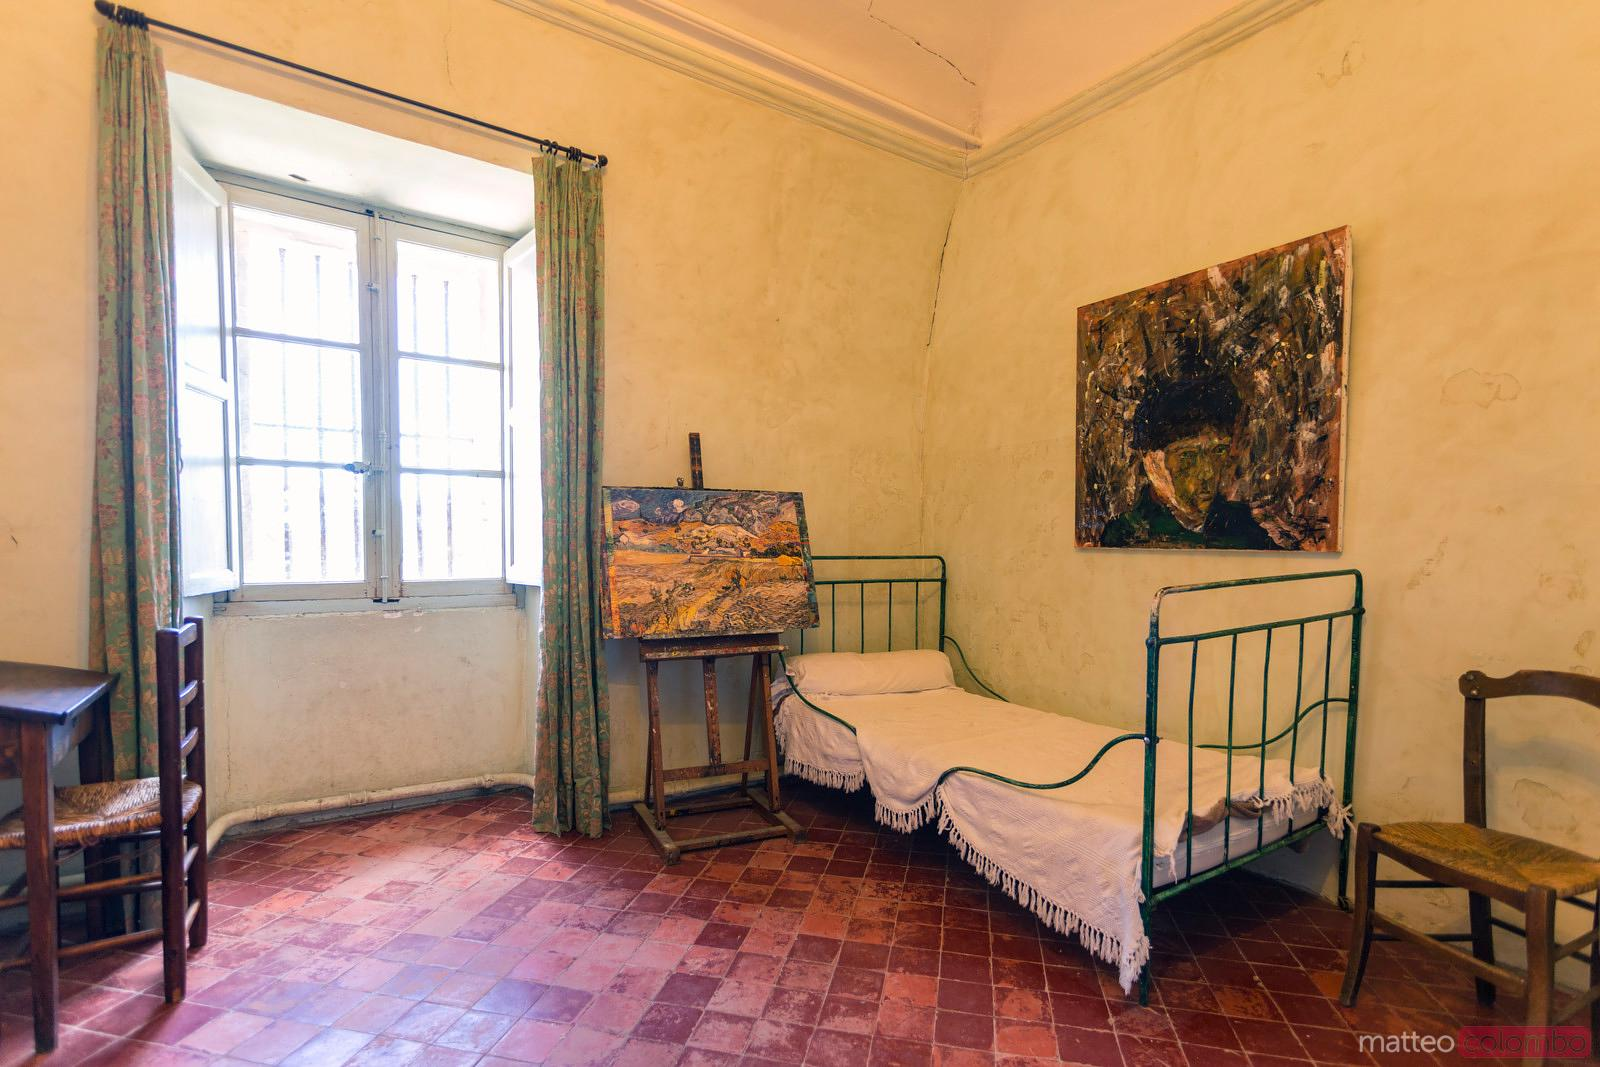 St Remy Matteo Colombo Travel Photography Van Gogh Bedroom In St Remy De